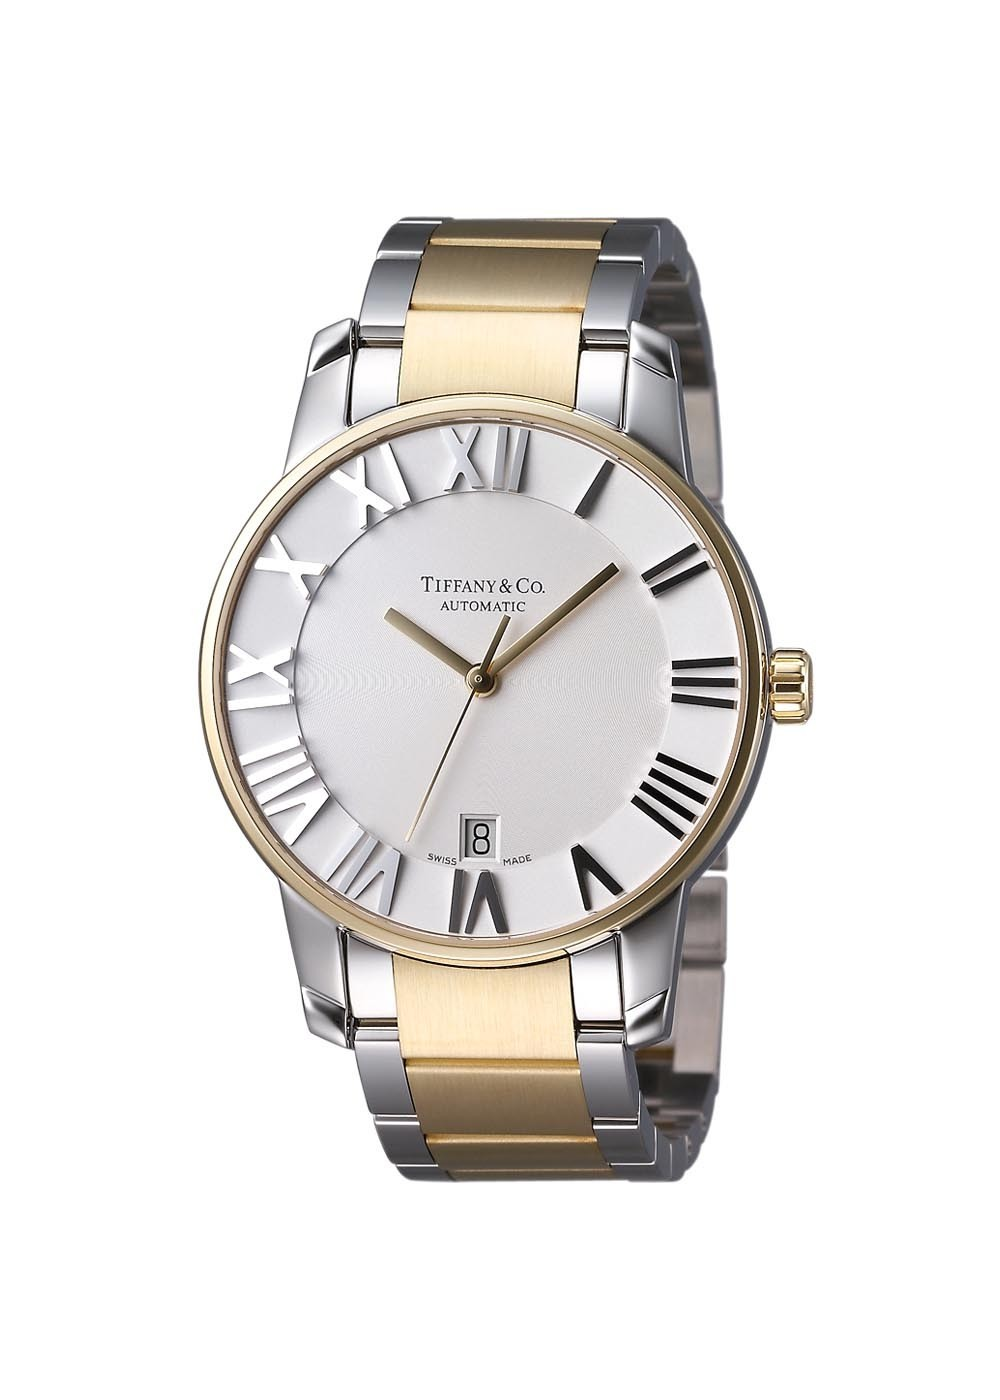 【最大79%OFF】【Tiffany&co.】AtlasDome|シルバー|メンズ雑貨|LUXURY WATCH COLECTION